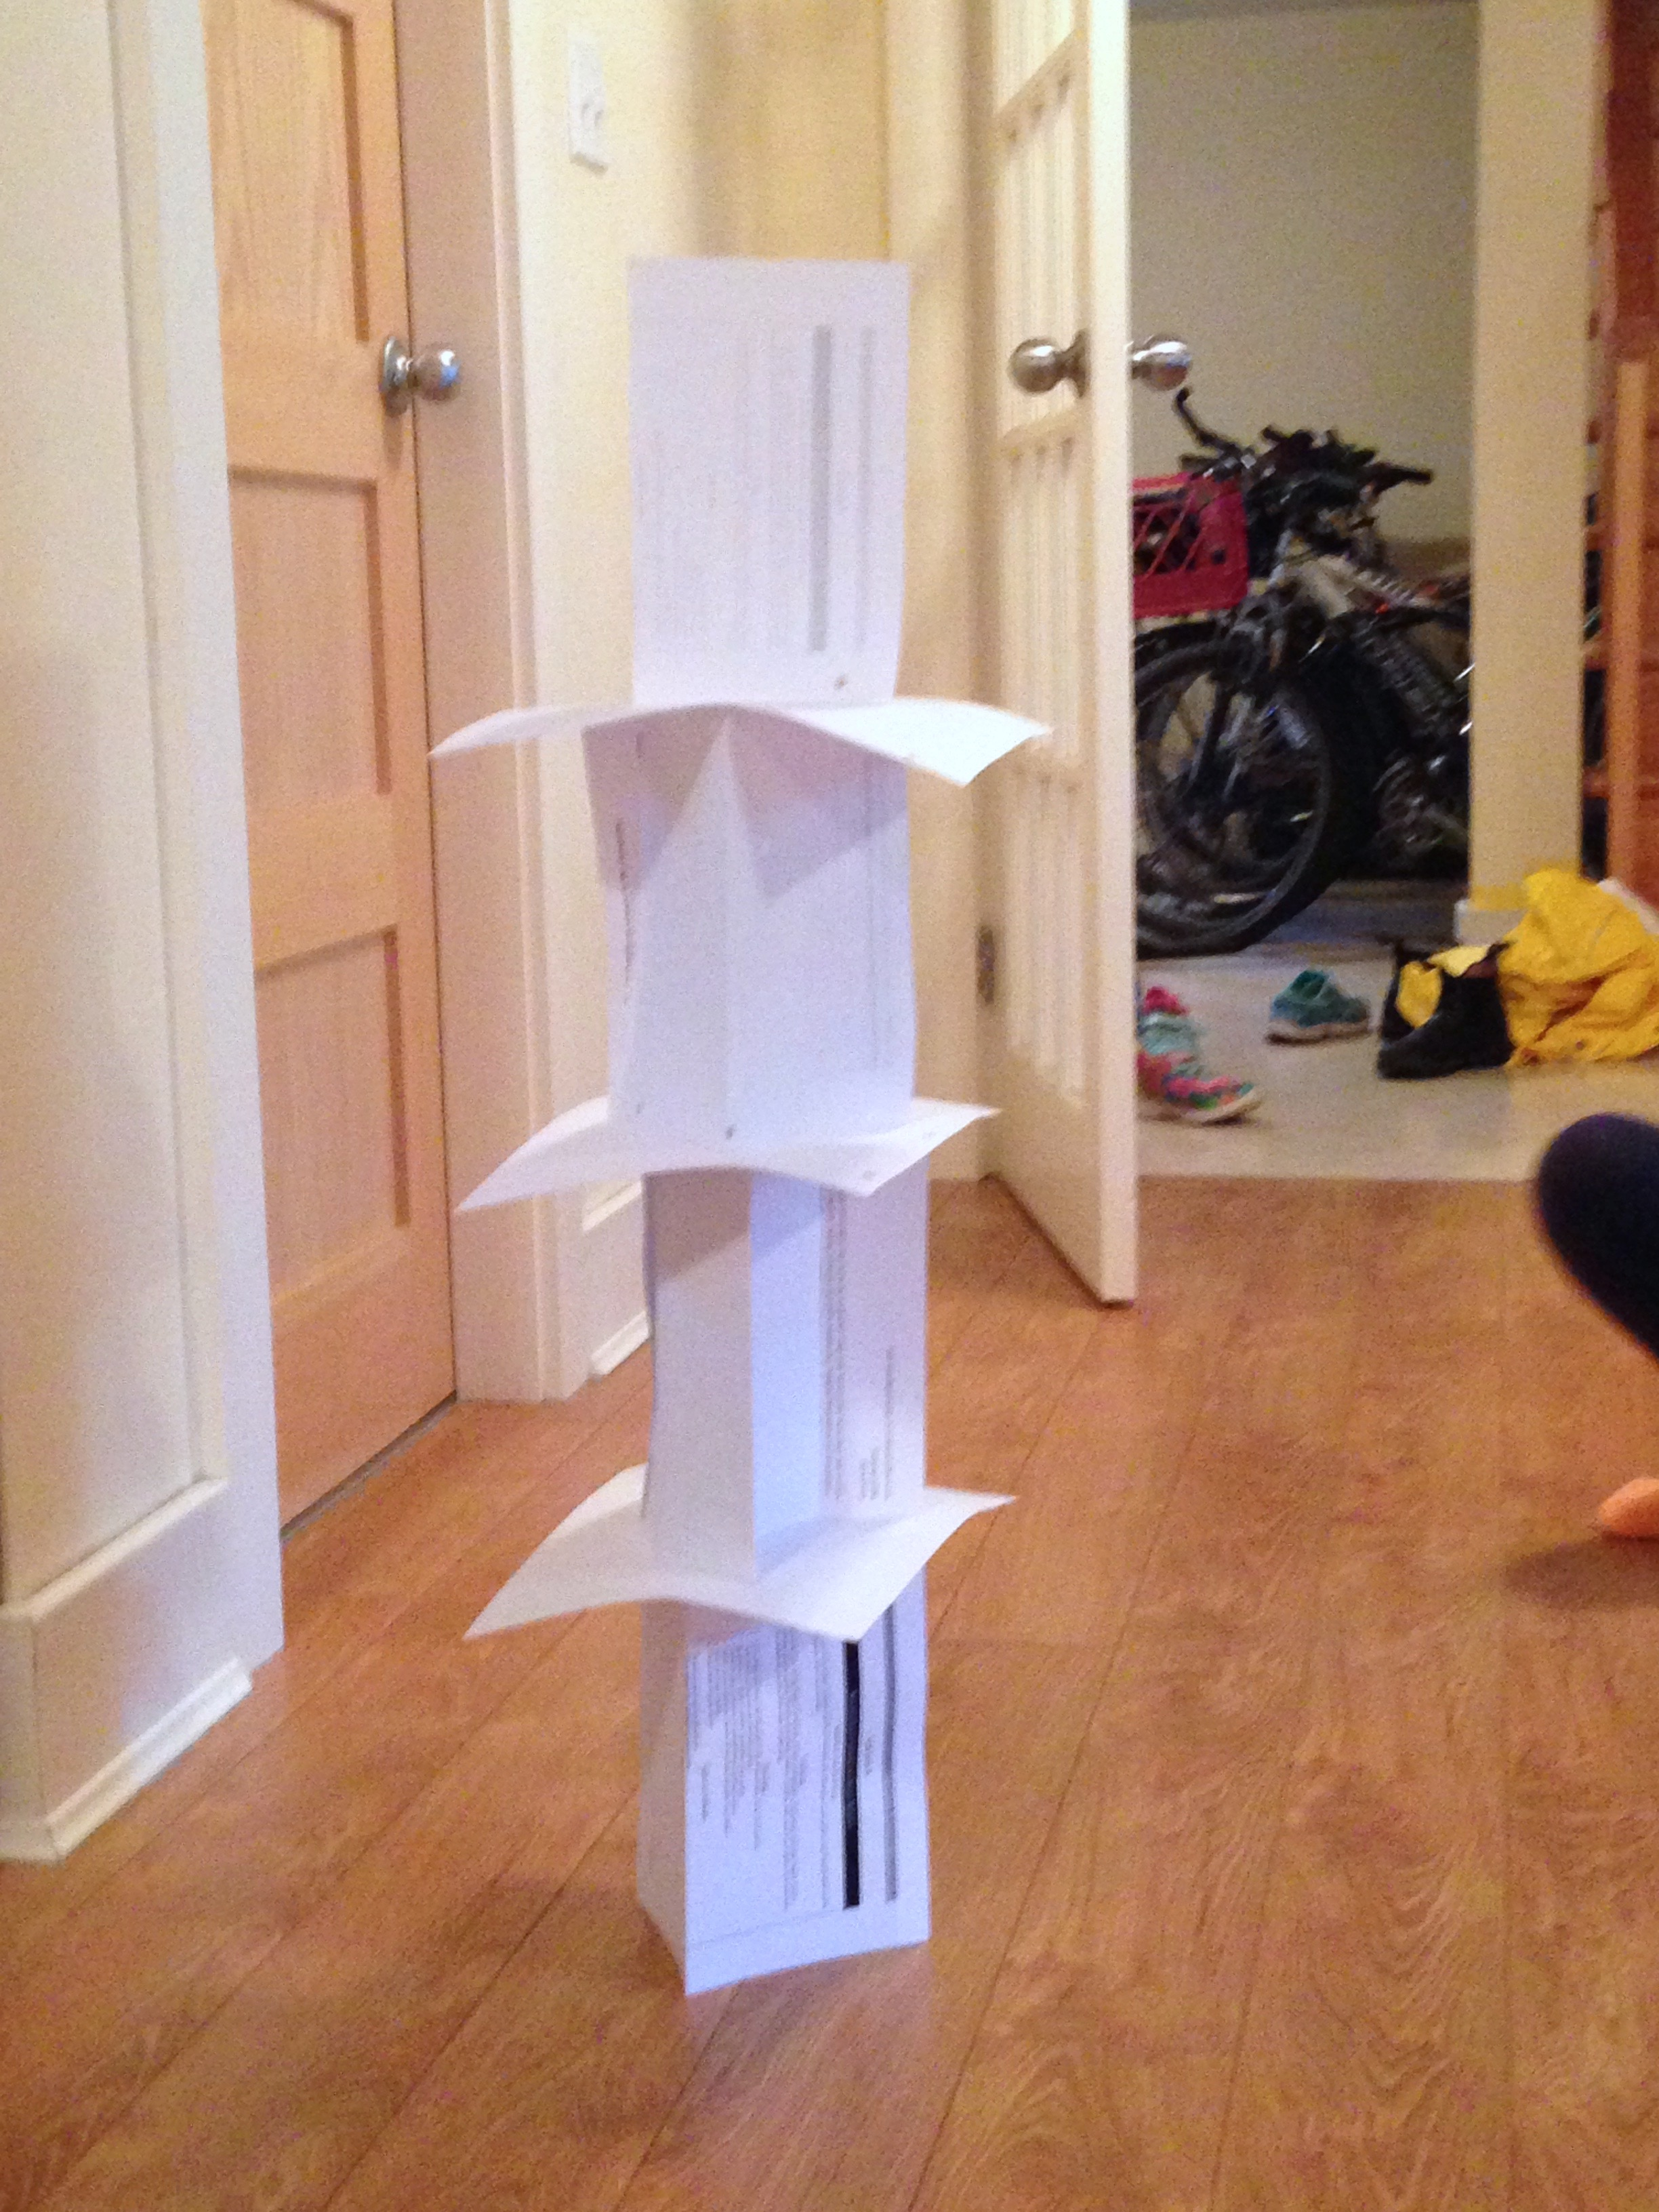 Paper Tower Challenge Ingridscience Ca